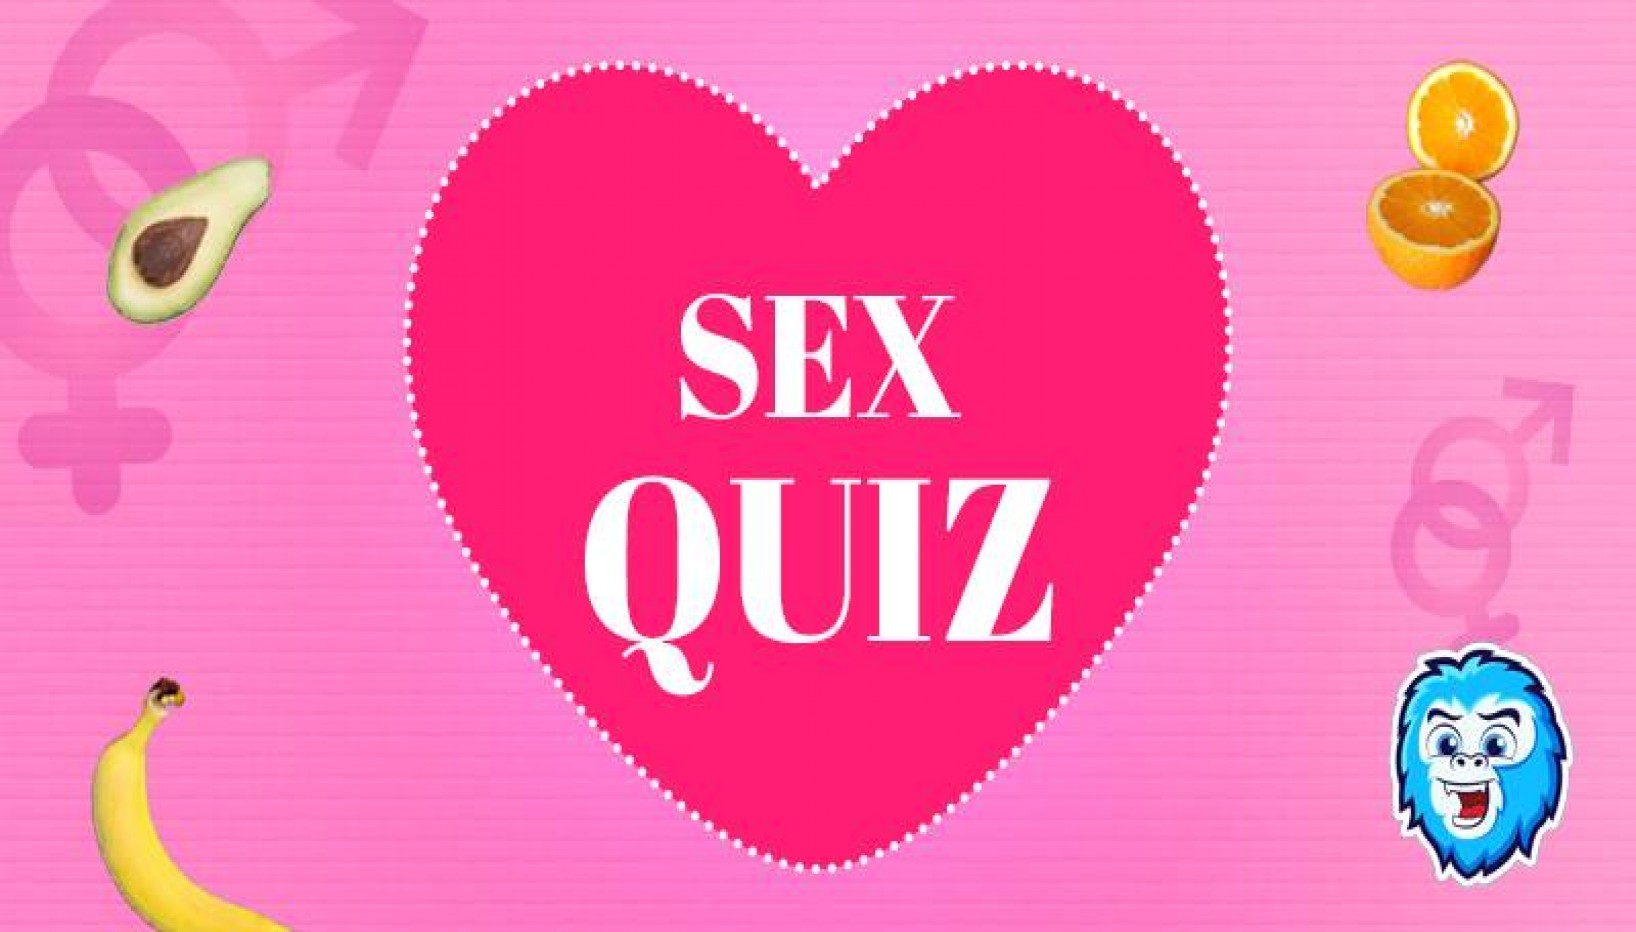 Sex Quiz: Only A True Sexpert Can Score More Than 8 In This Sensual Quiz